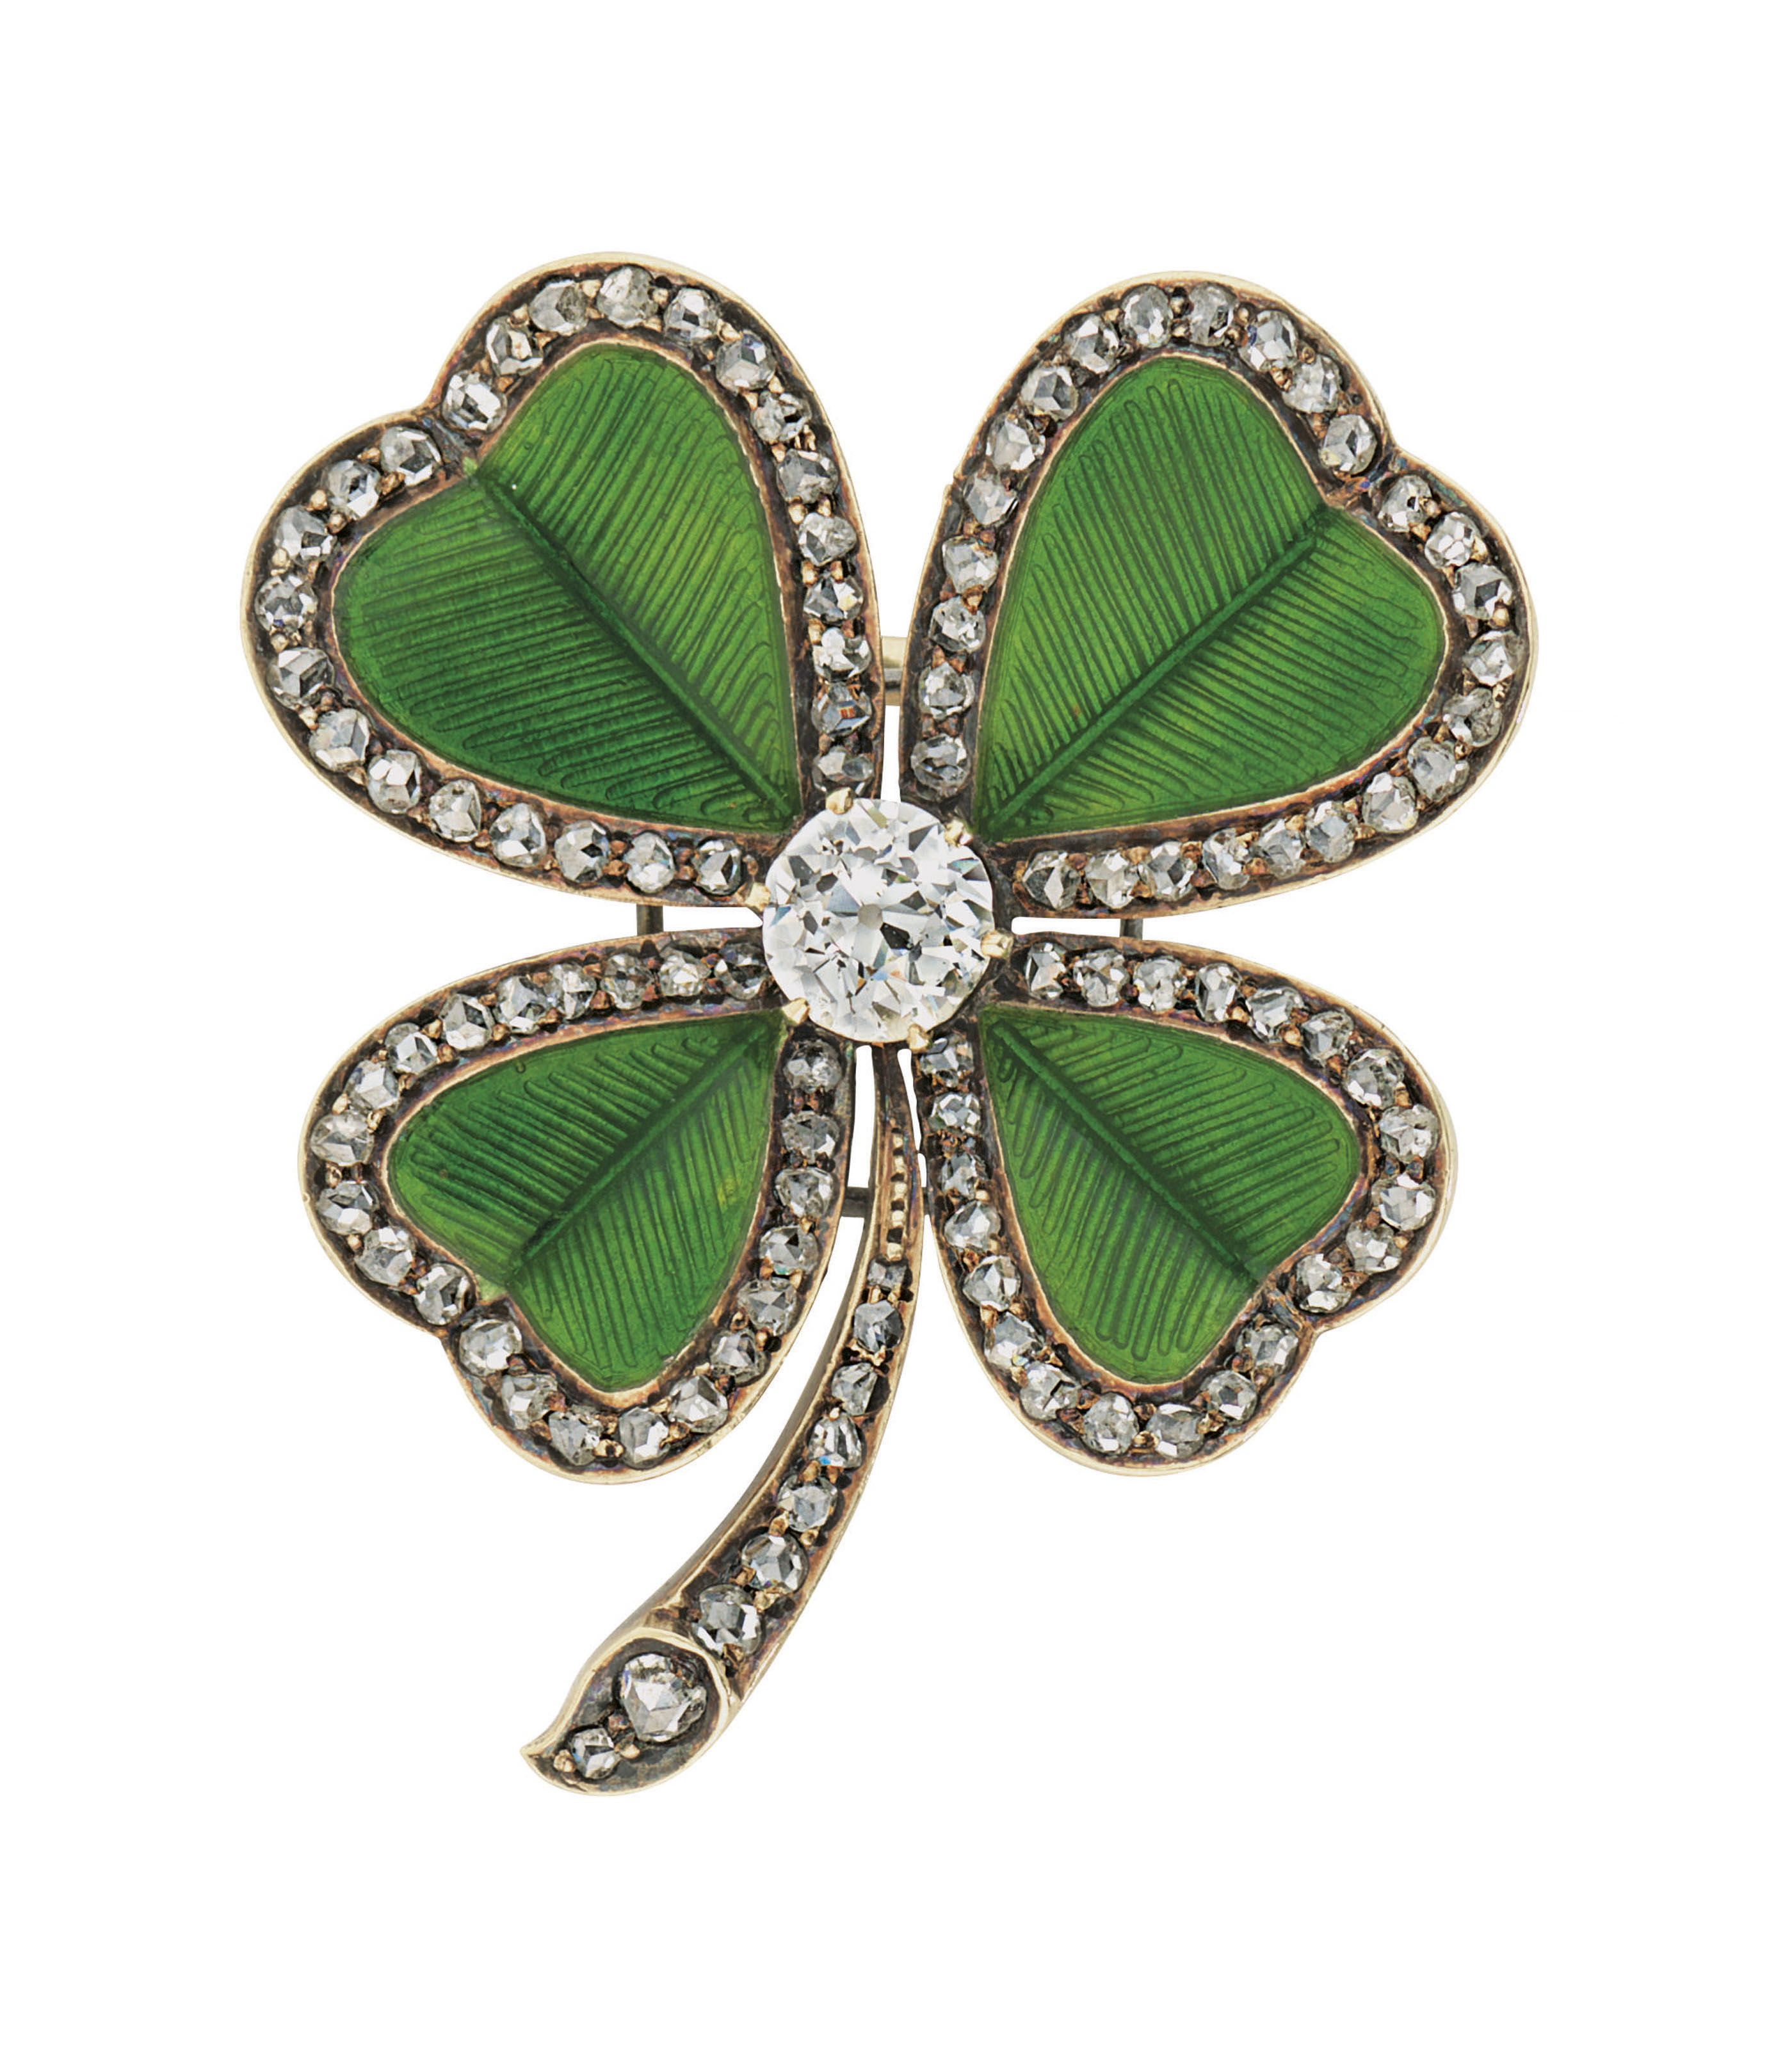 A JEWELLED AND GUILLOCHÉ ENAMEL GOLD BROOCH